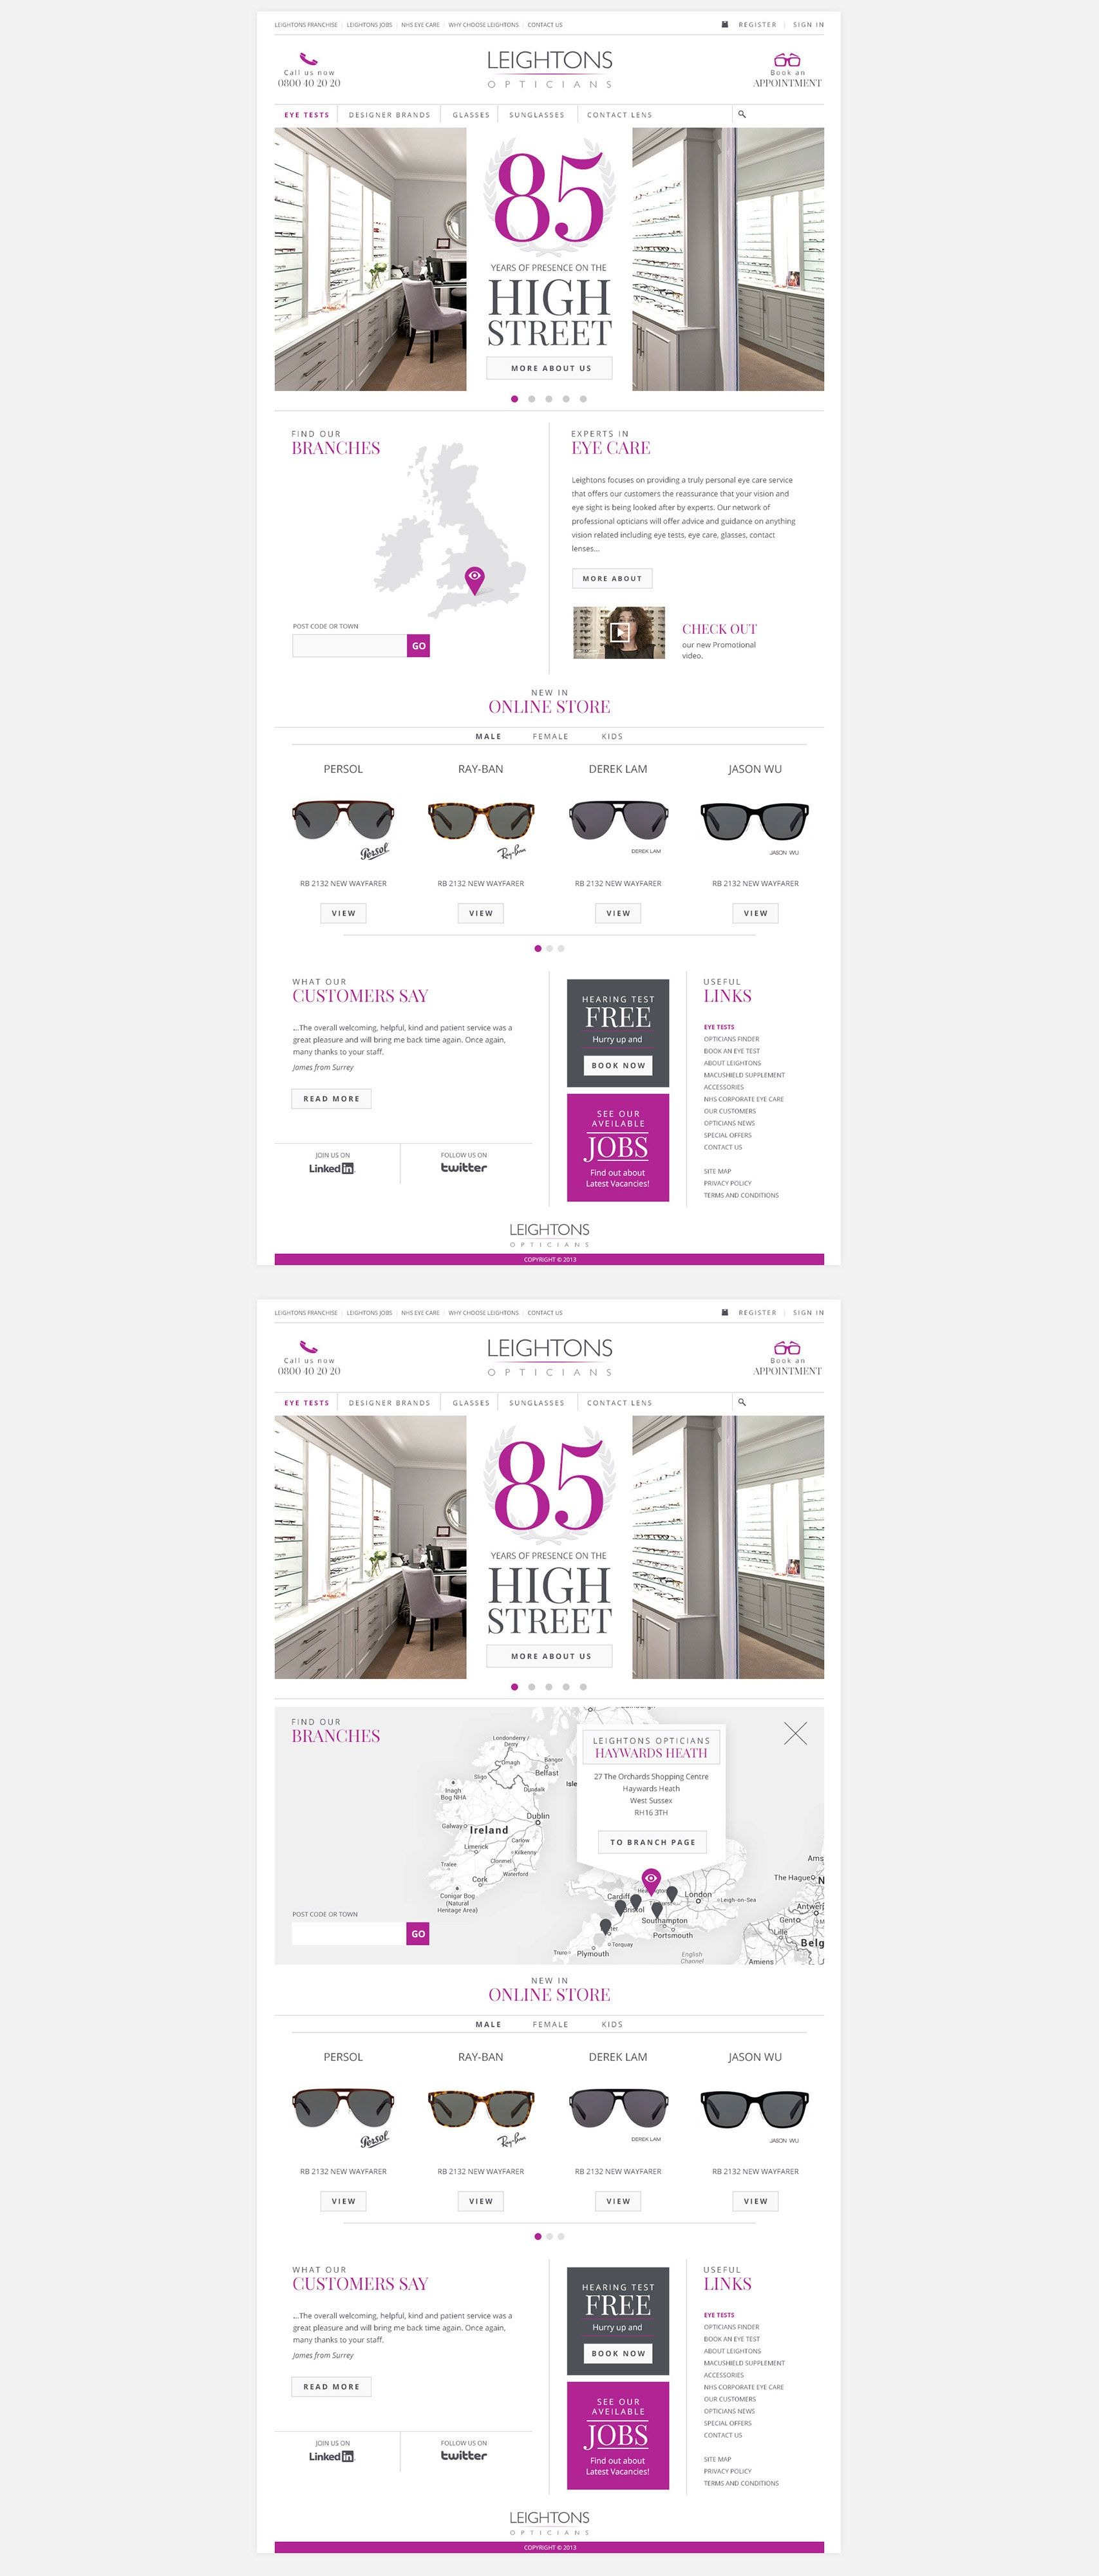 I Liked How It All Looked But The Client Did Not Web Design Design Clients